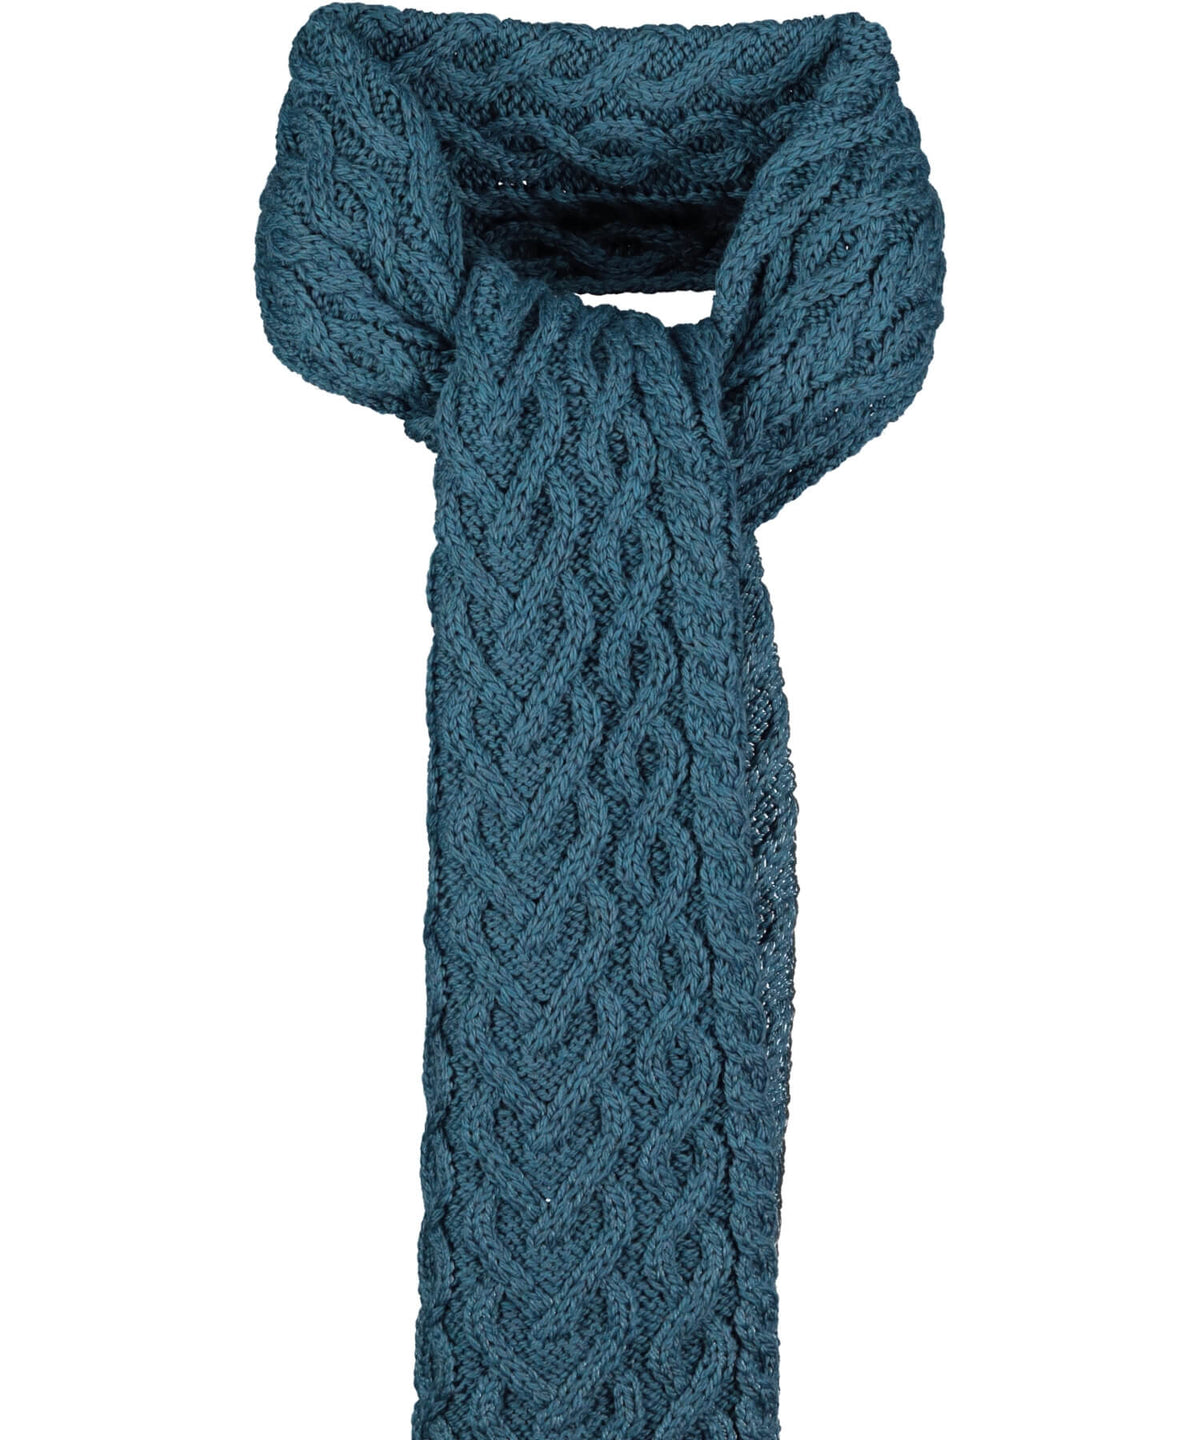 Supersoft Heart Knit Scarf - Teal - [Aran Crafts] - Ladies Scarves & Gloves - Irish Gifts